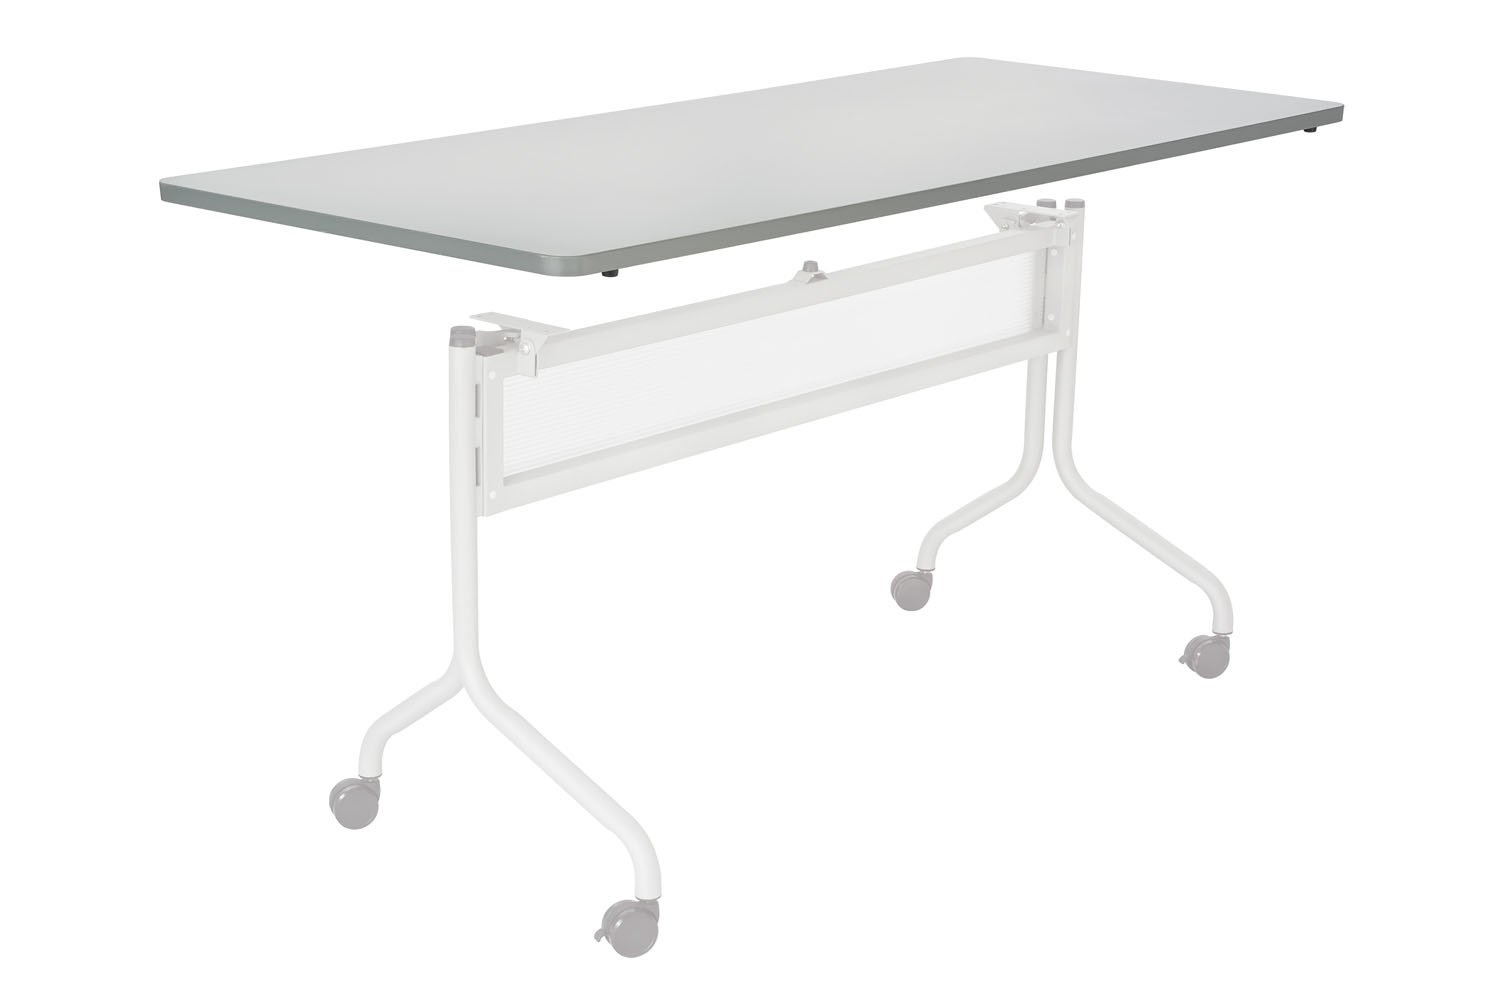 Safco Office Meeting Seminar Impromptu Mobile Training Table, Rectangle Top - 72 x 24'' Gray